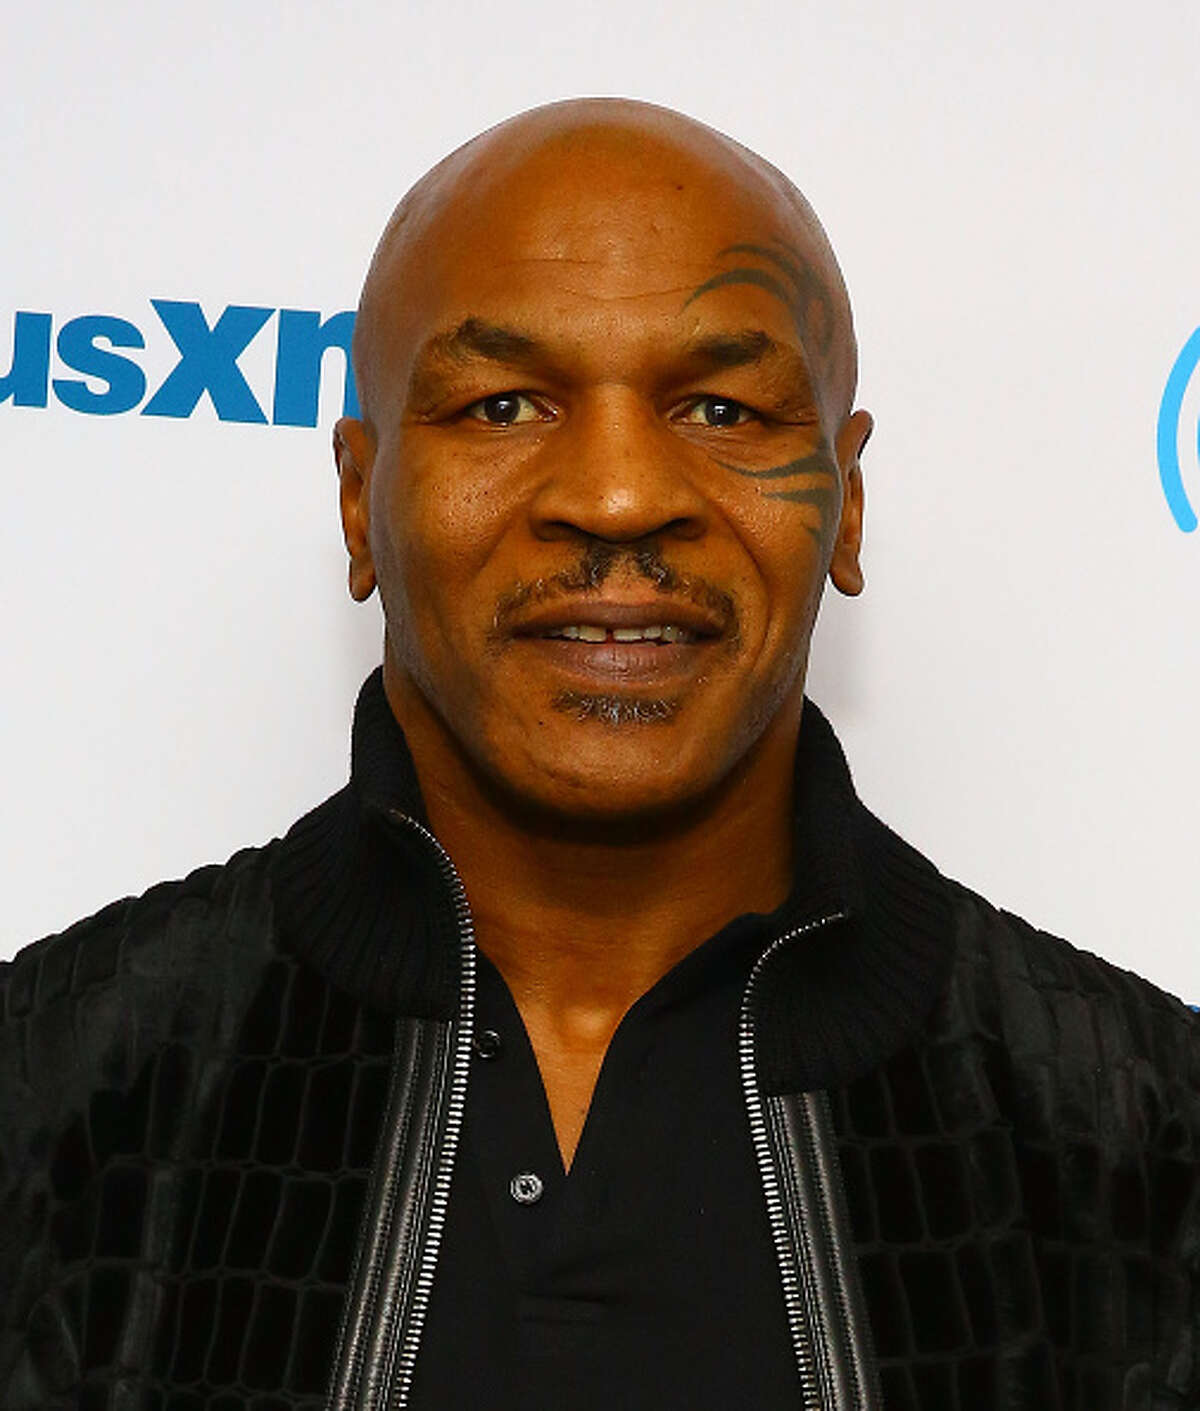 The boxer Boxer Mike Tyson drew a defense from GOP nominee Donald Trump after his 1992 conviction for rape. Tyson endorsed Trump's presidential bid in October 2015.